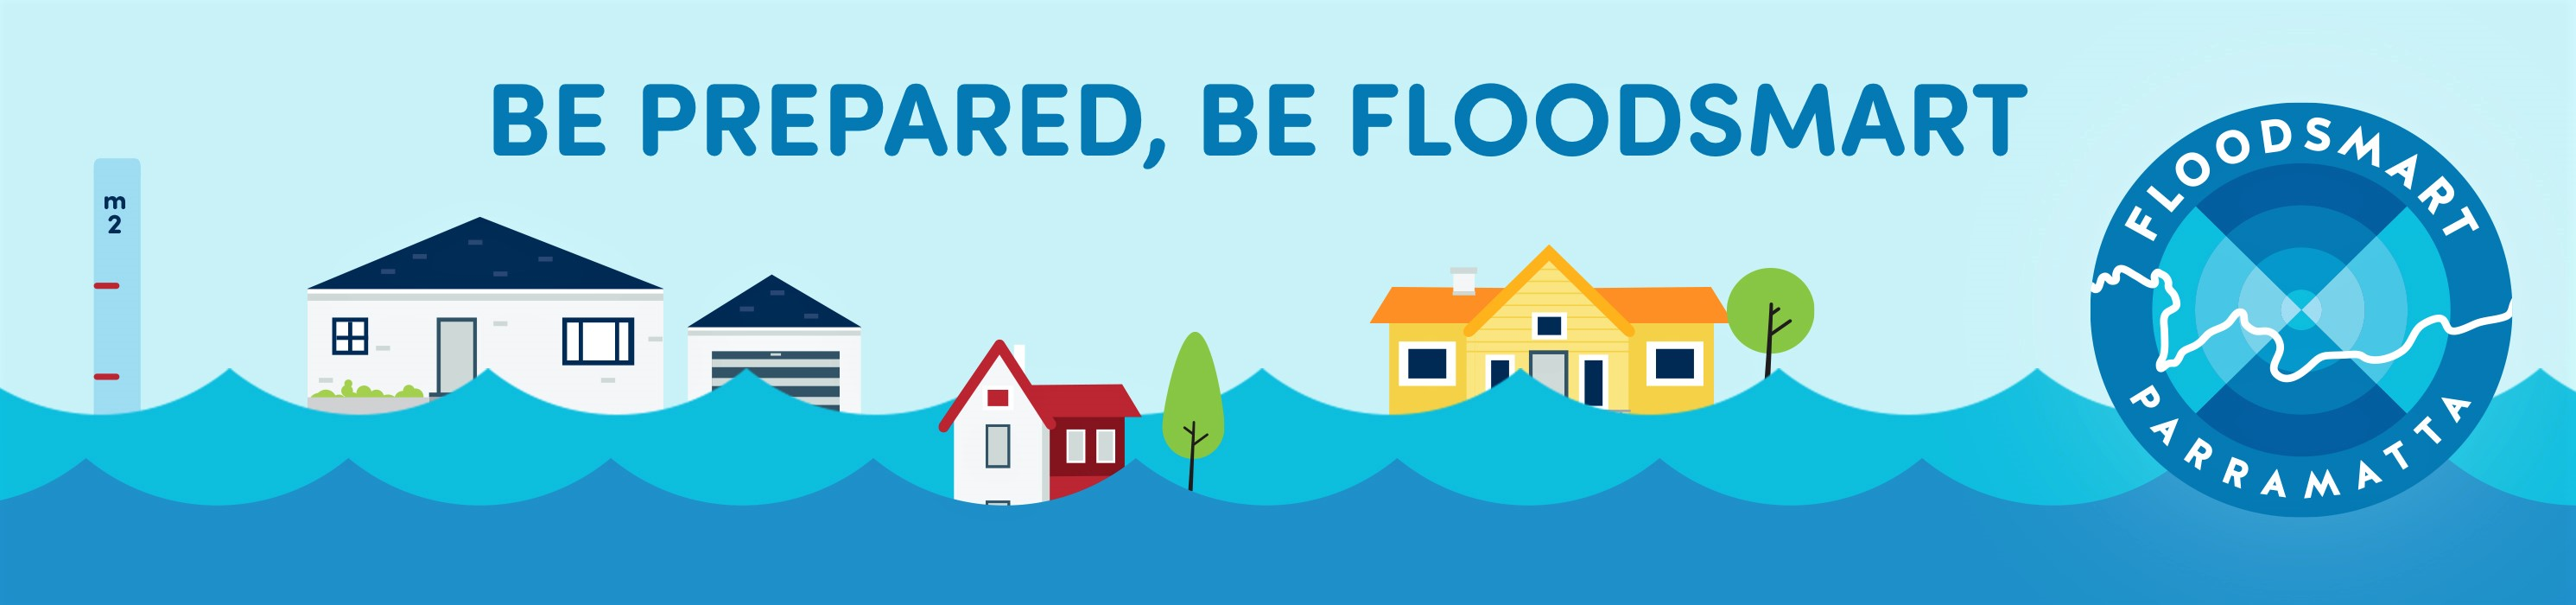 Flood clipart flood prevention. Warning service city of